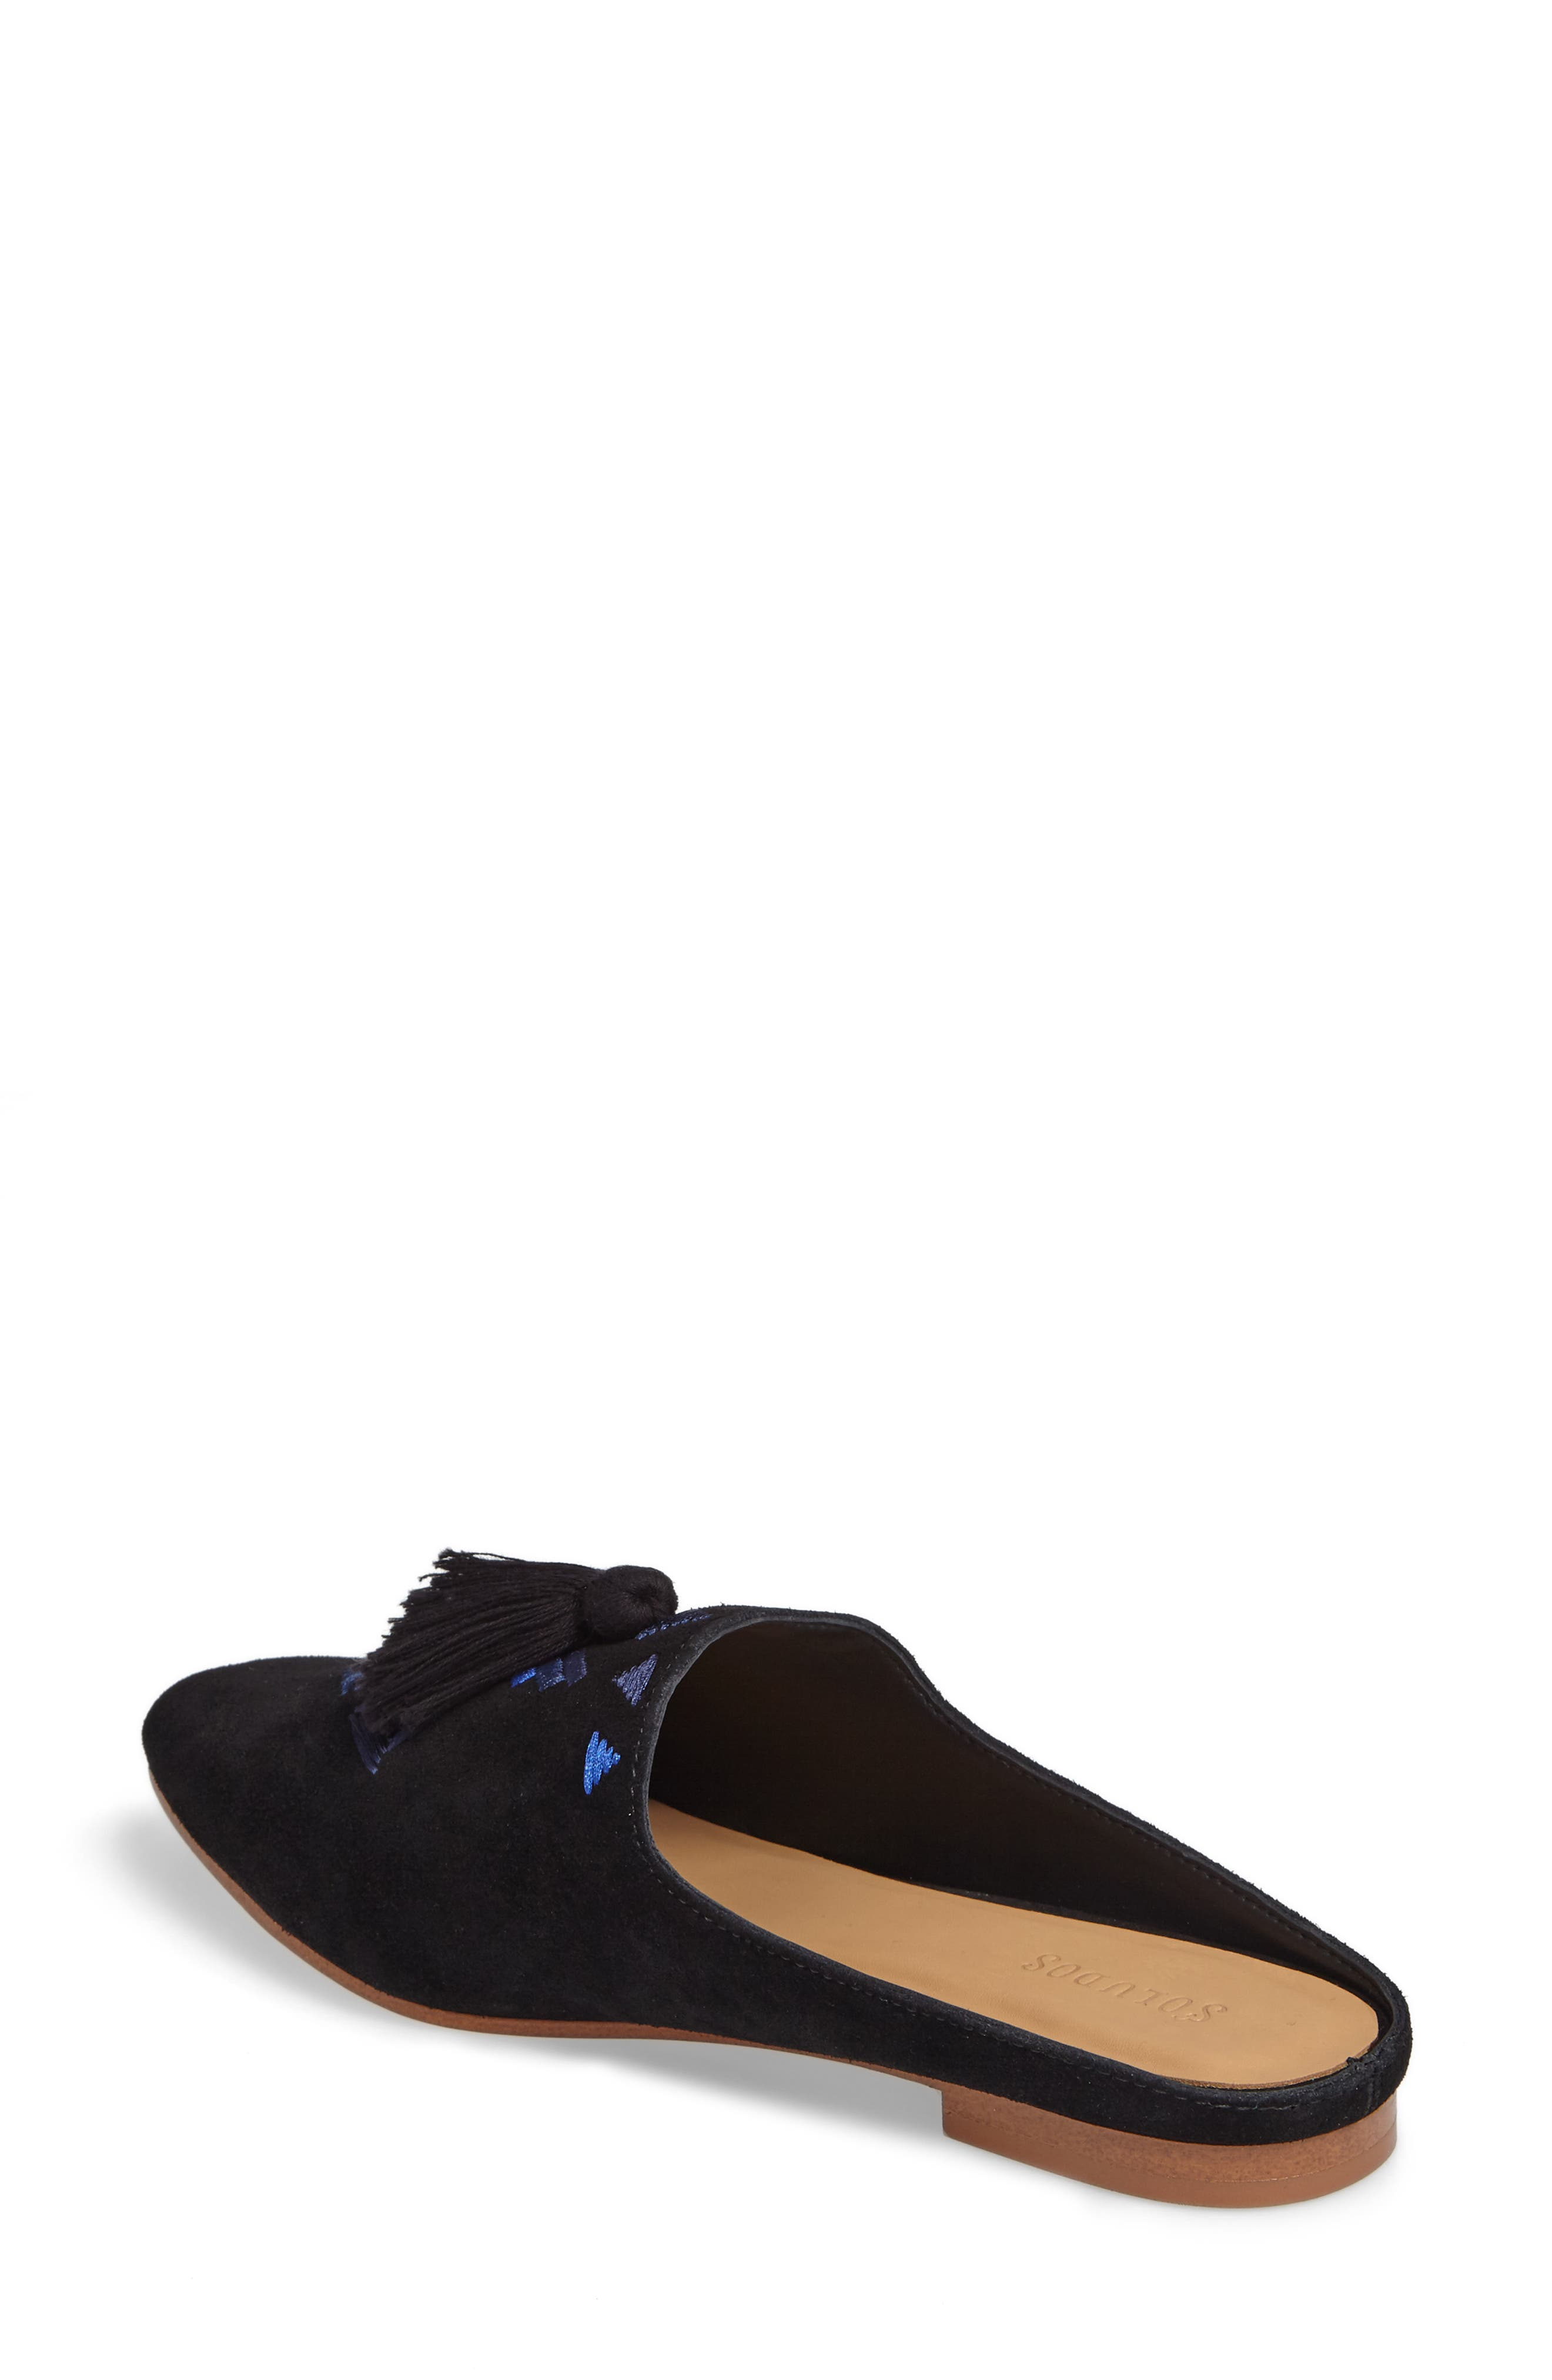 Alternate Image 2  - Soludos Palazzo Loafer Mule (Women)